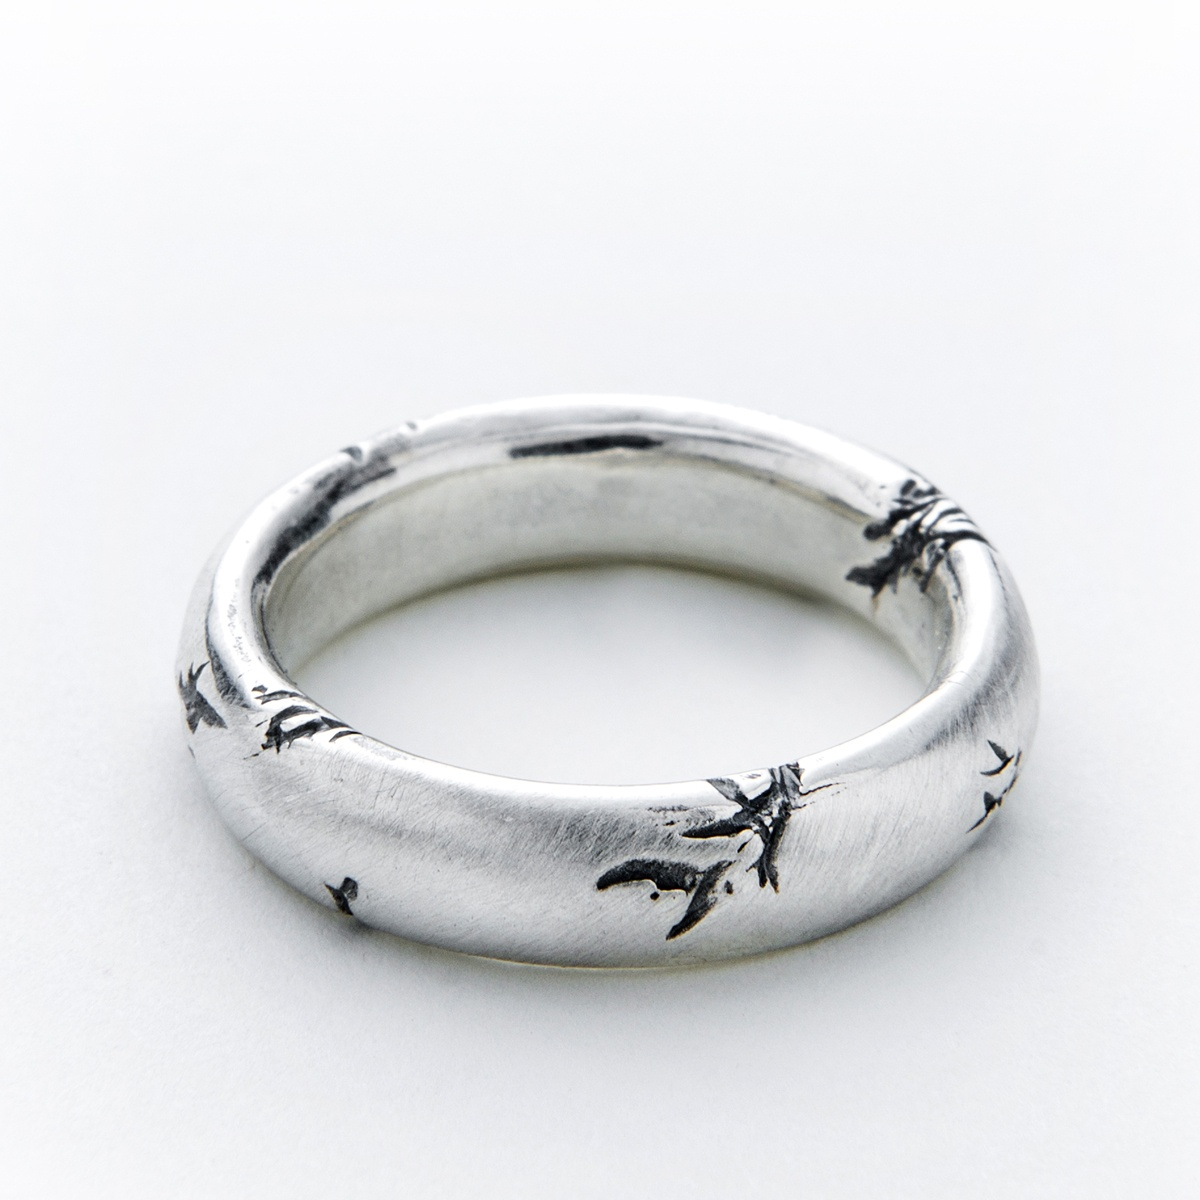 Chunky Men's silver ring. Solid mens ring with black cracks